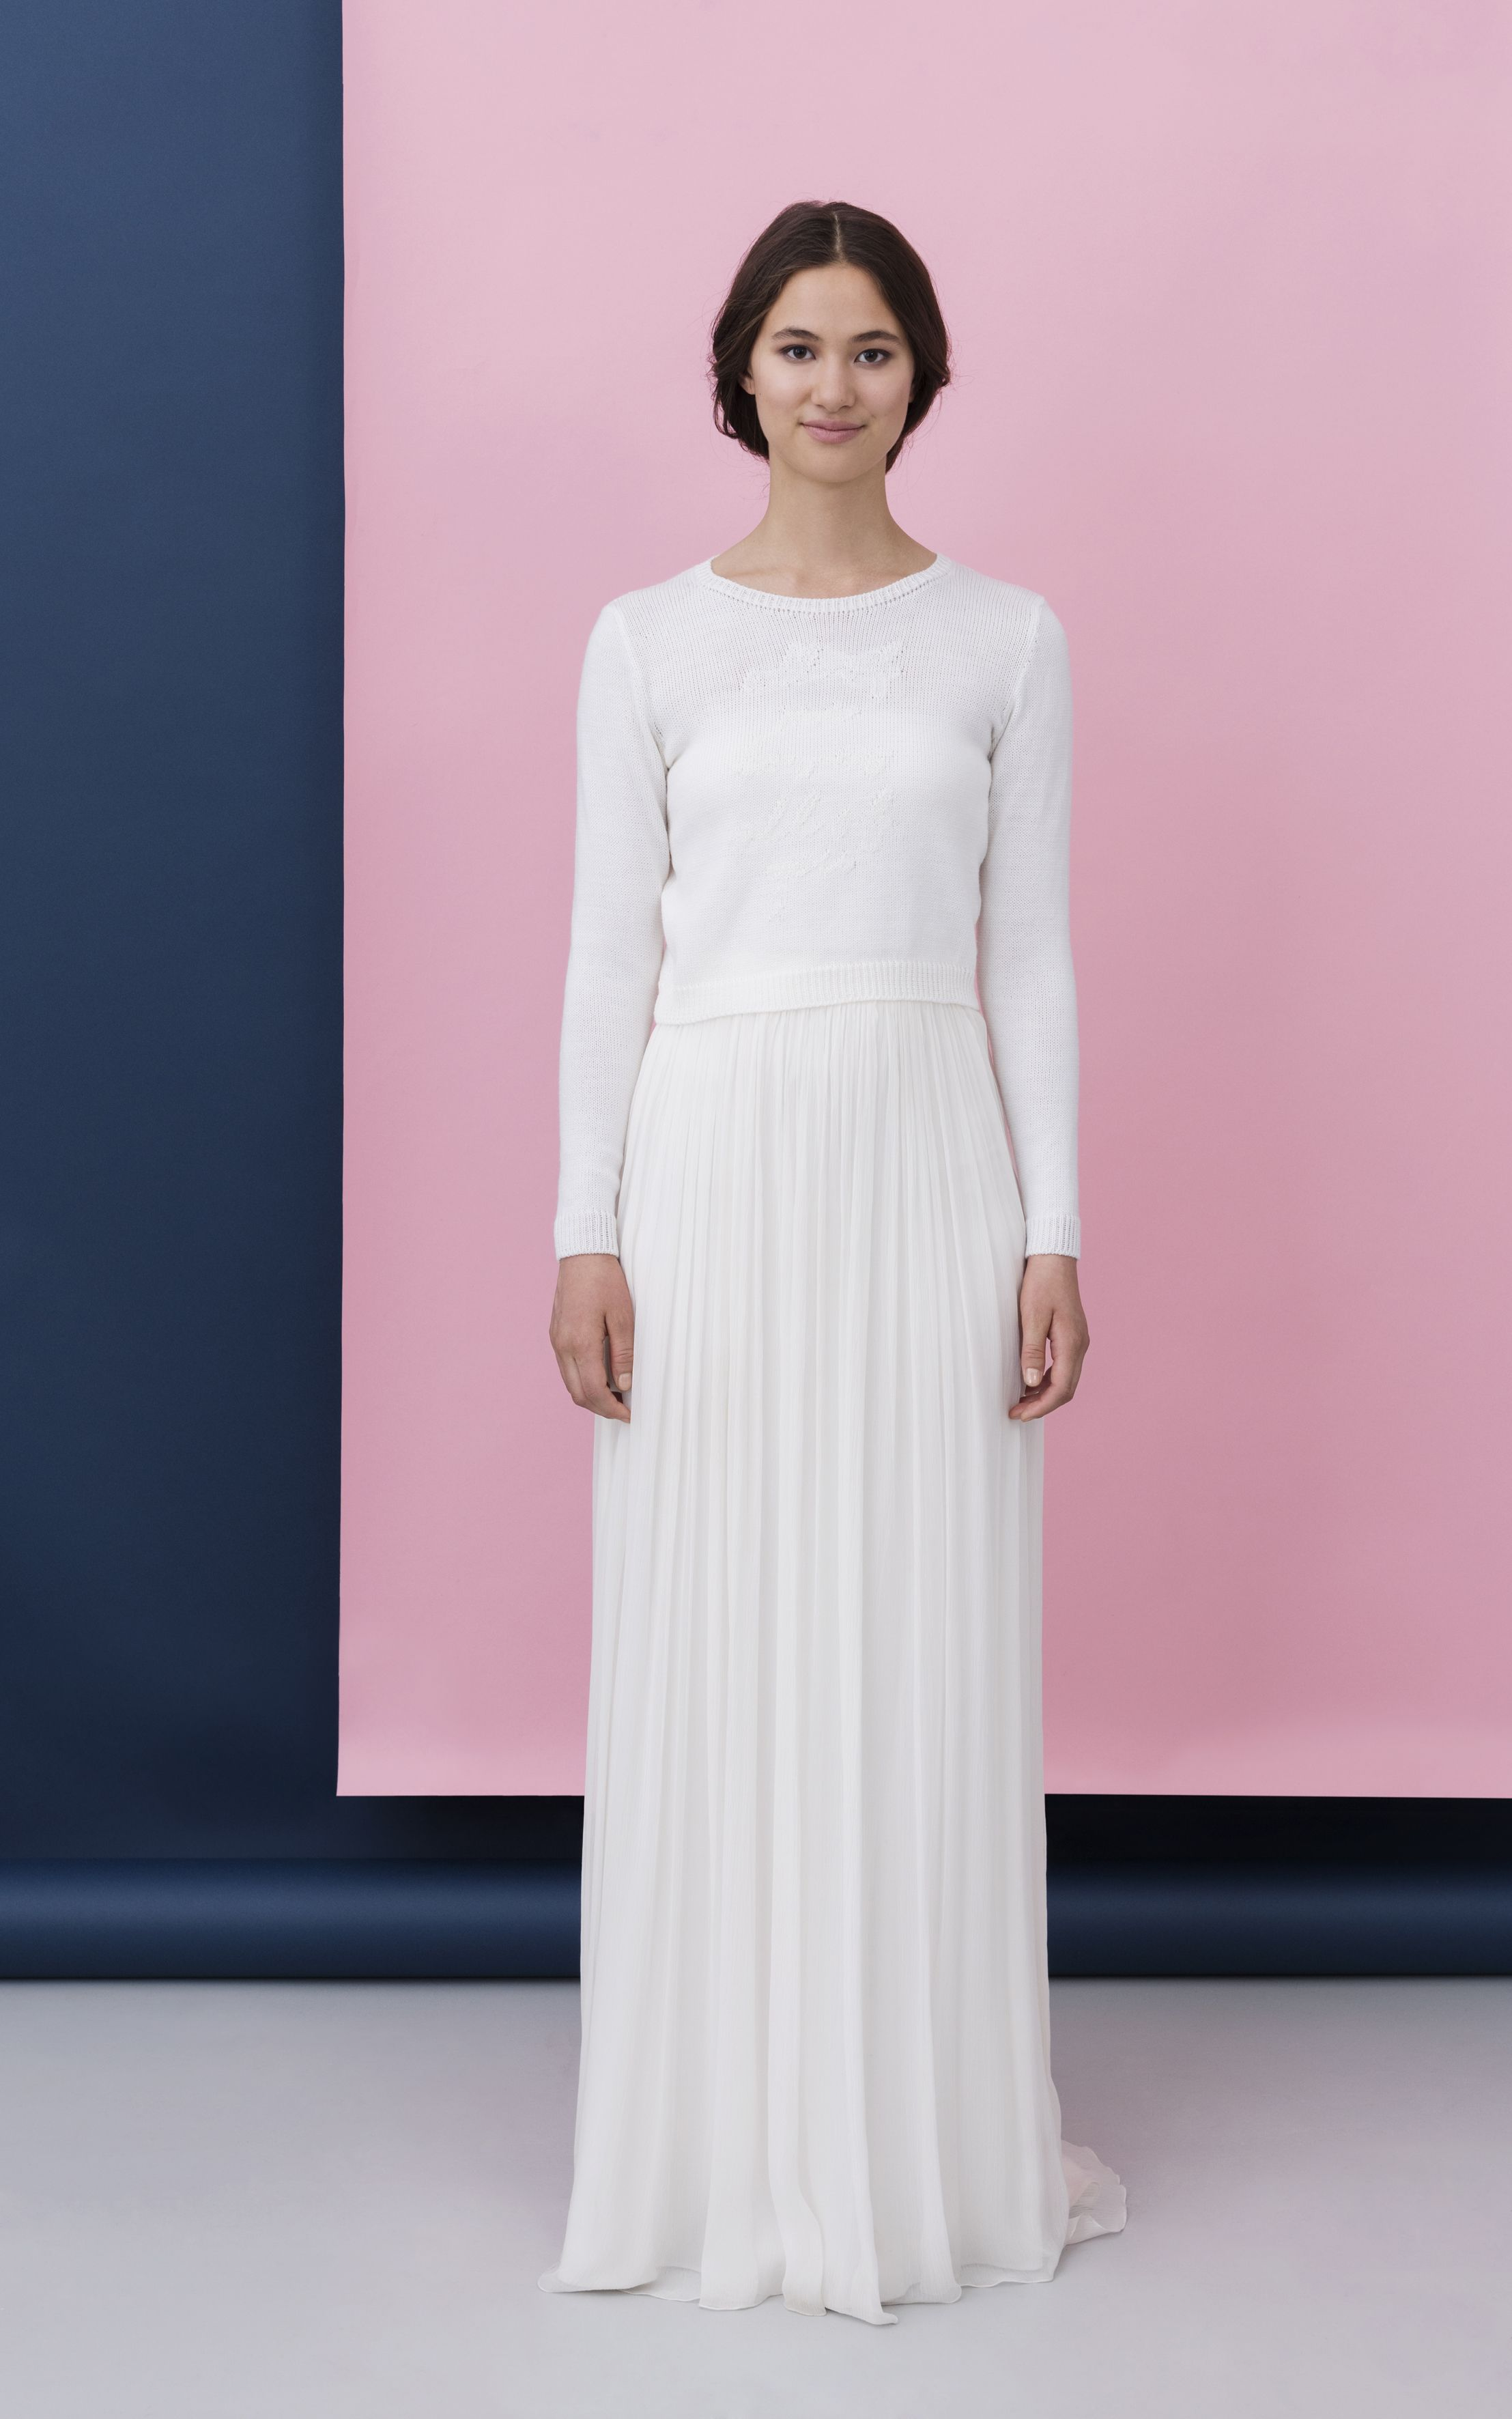 kisui Berlin Collection Bridal Style: Skirt edisa & Pullover Poetic ...